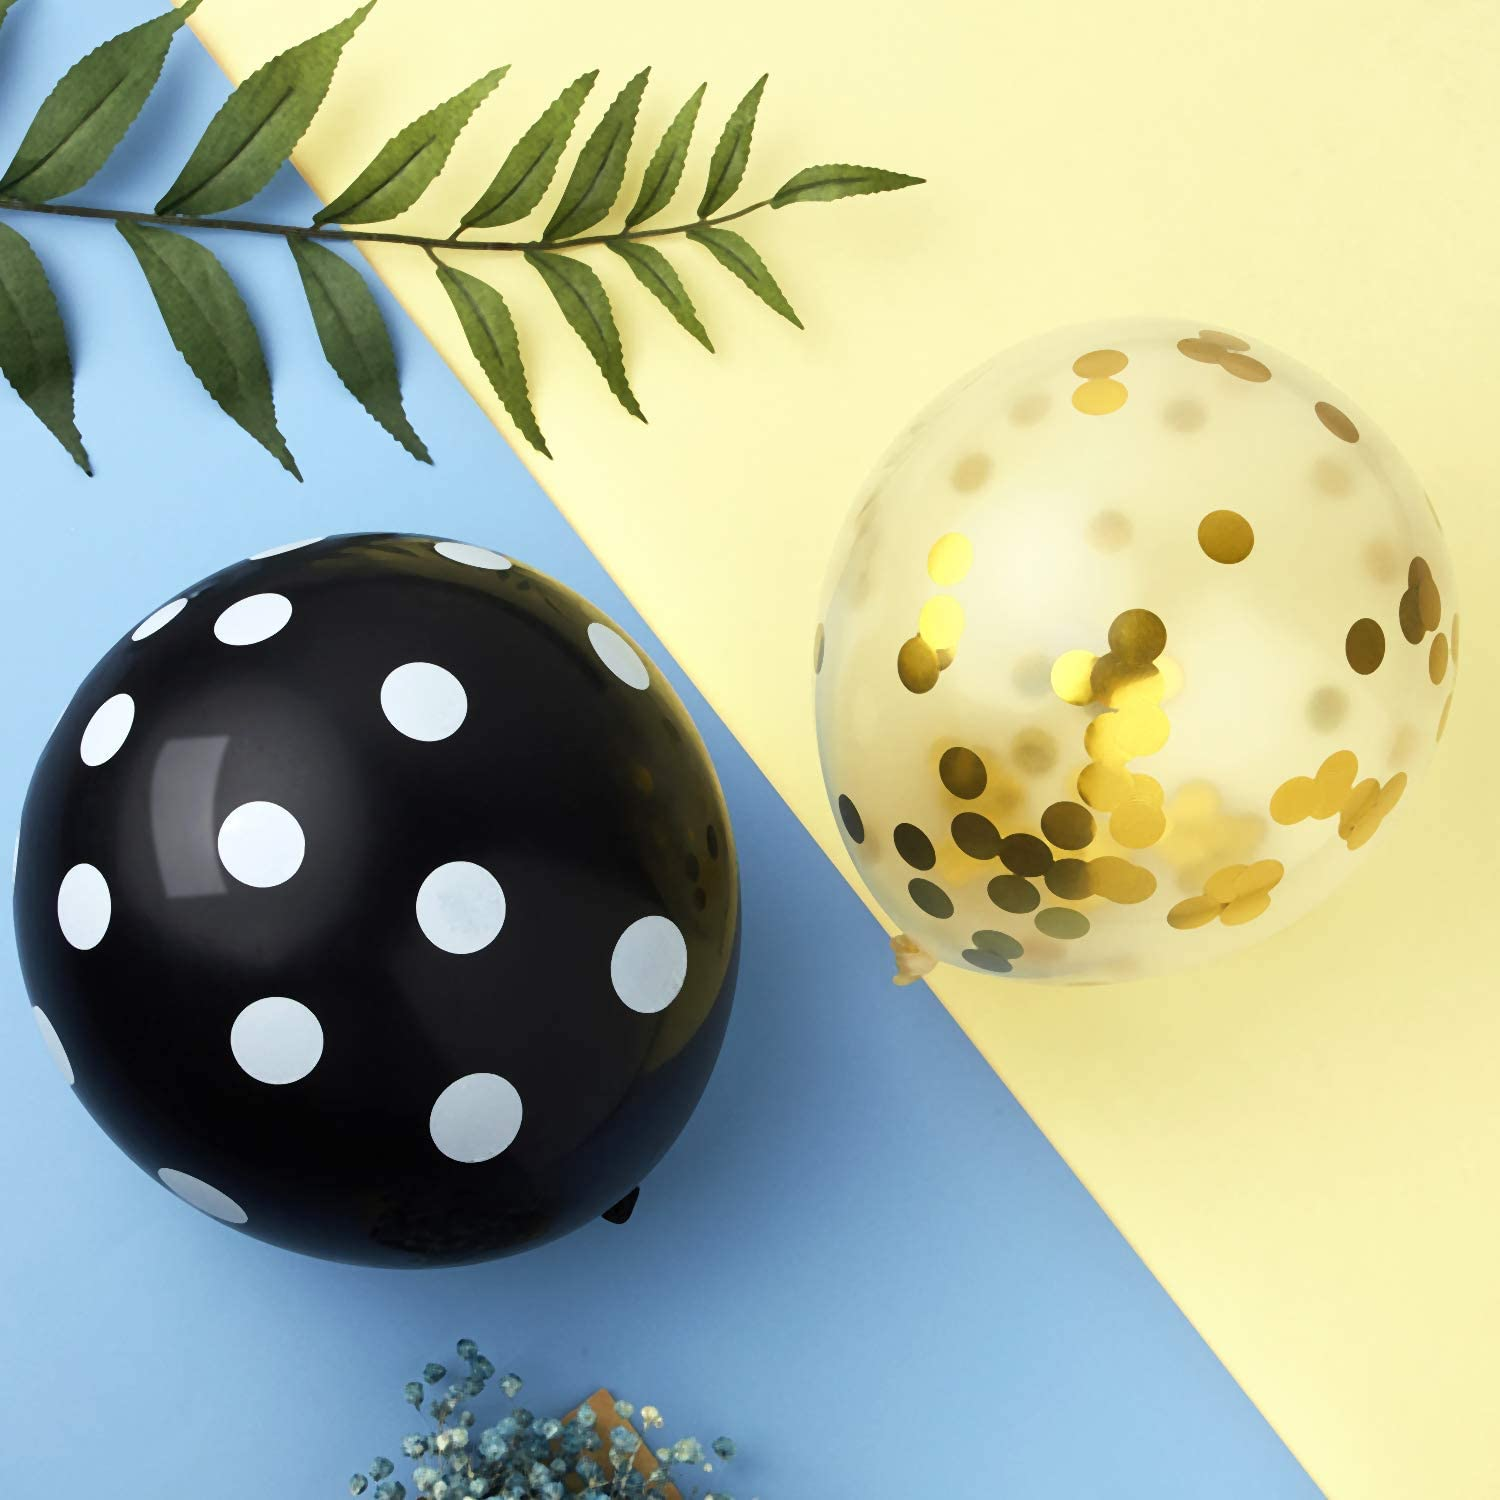 Includes 60 Pieces Latex Bumblebee Balloons Dots Confetti Balloons and 2 Pieces Gold Ribbon for Baby Shower Parties Favors Happy Bee Day Balloons Decorations Kit